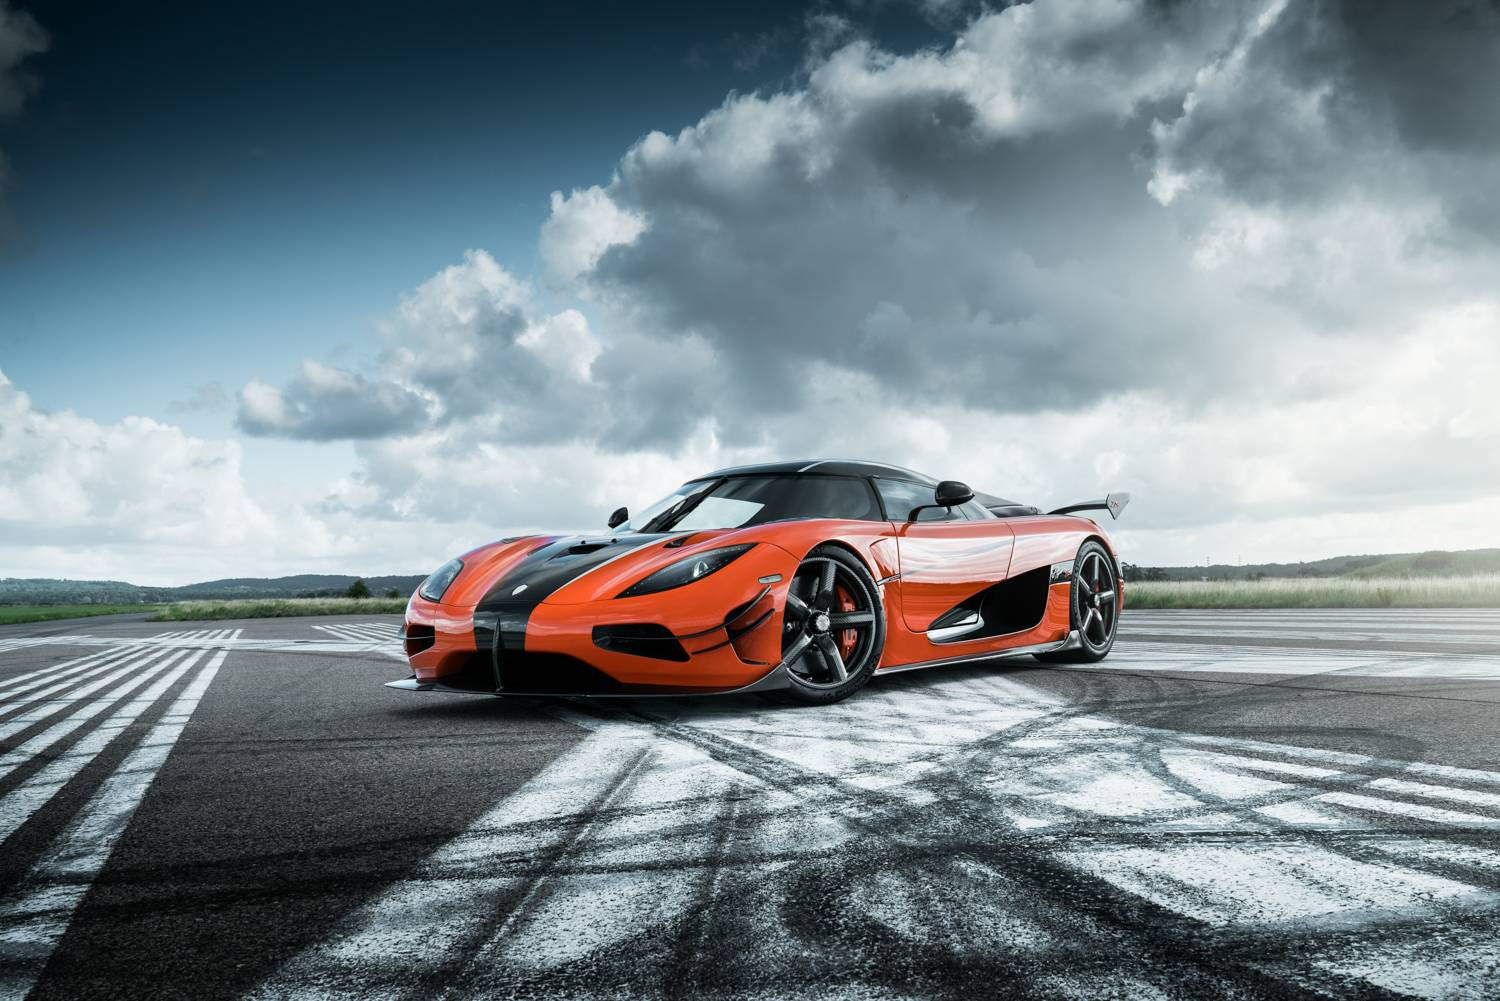 Meet the Koenigsegg Agera XS – First Agera RS in the US